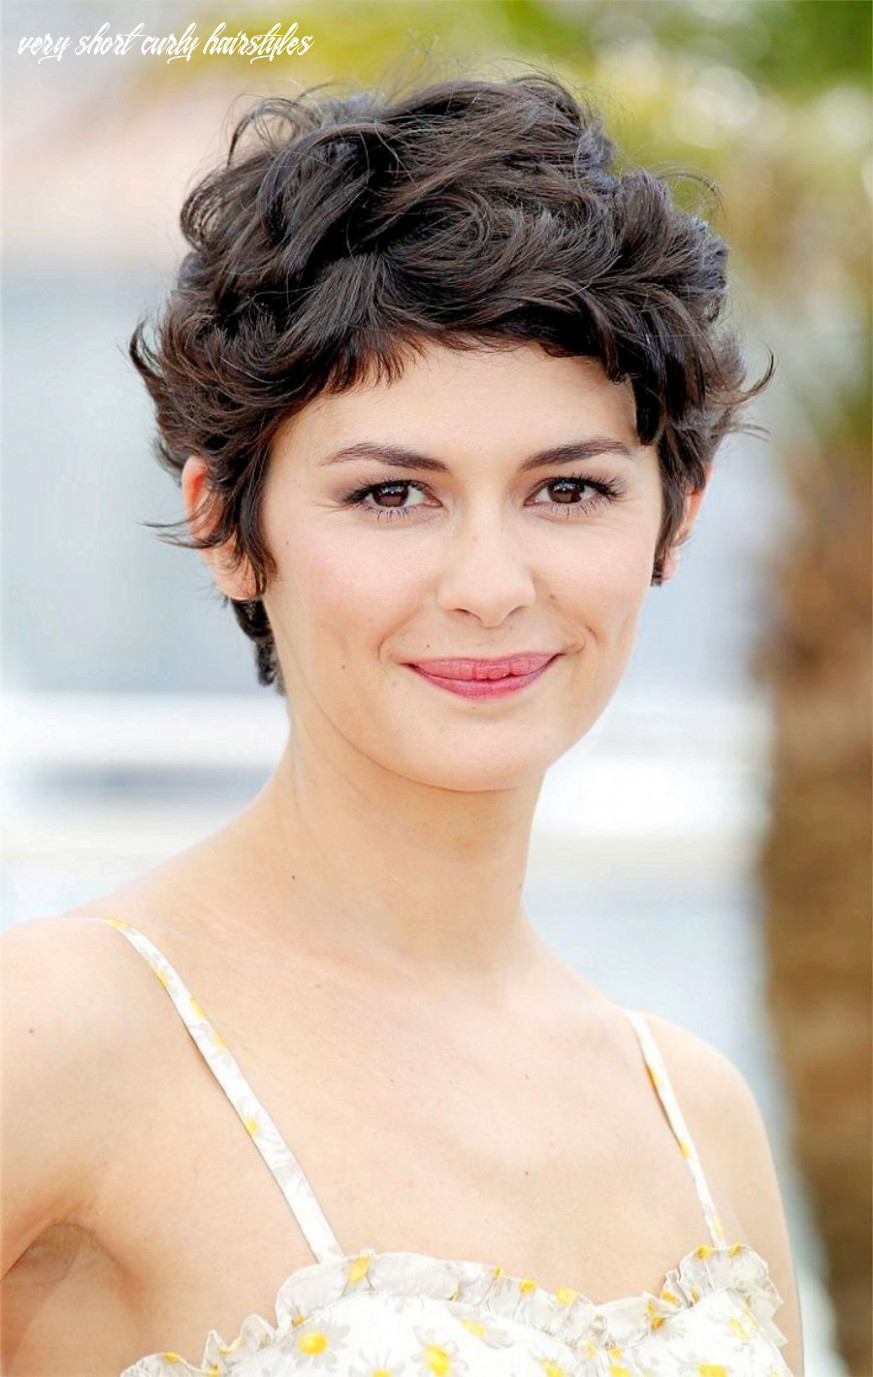 Very short curly hairstyles curly pixie haircut – curly short